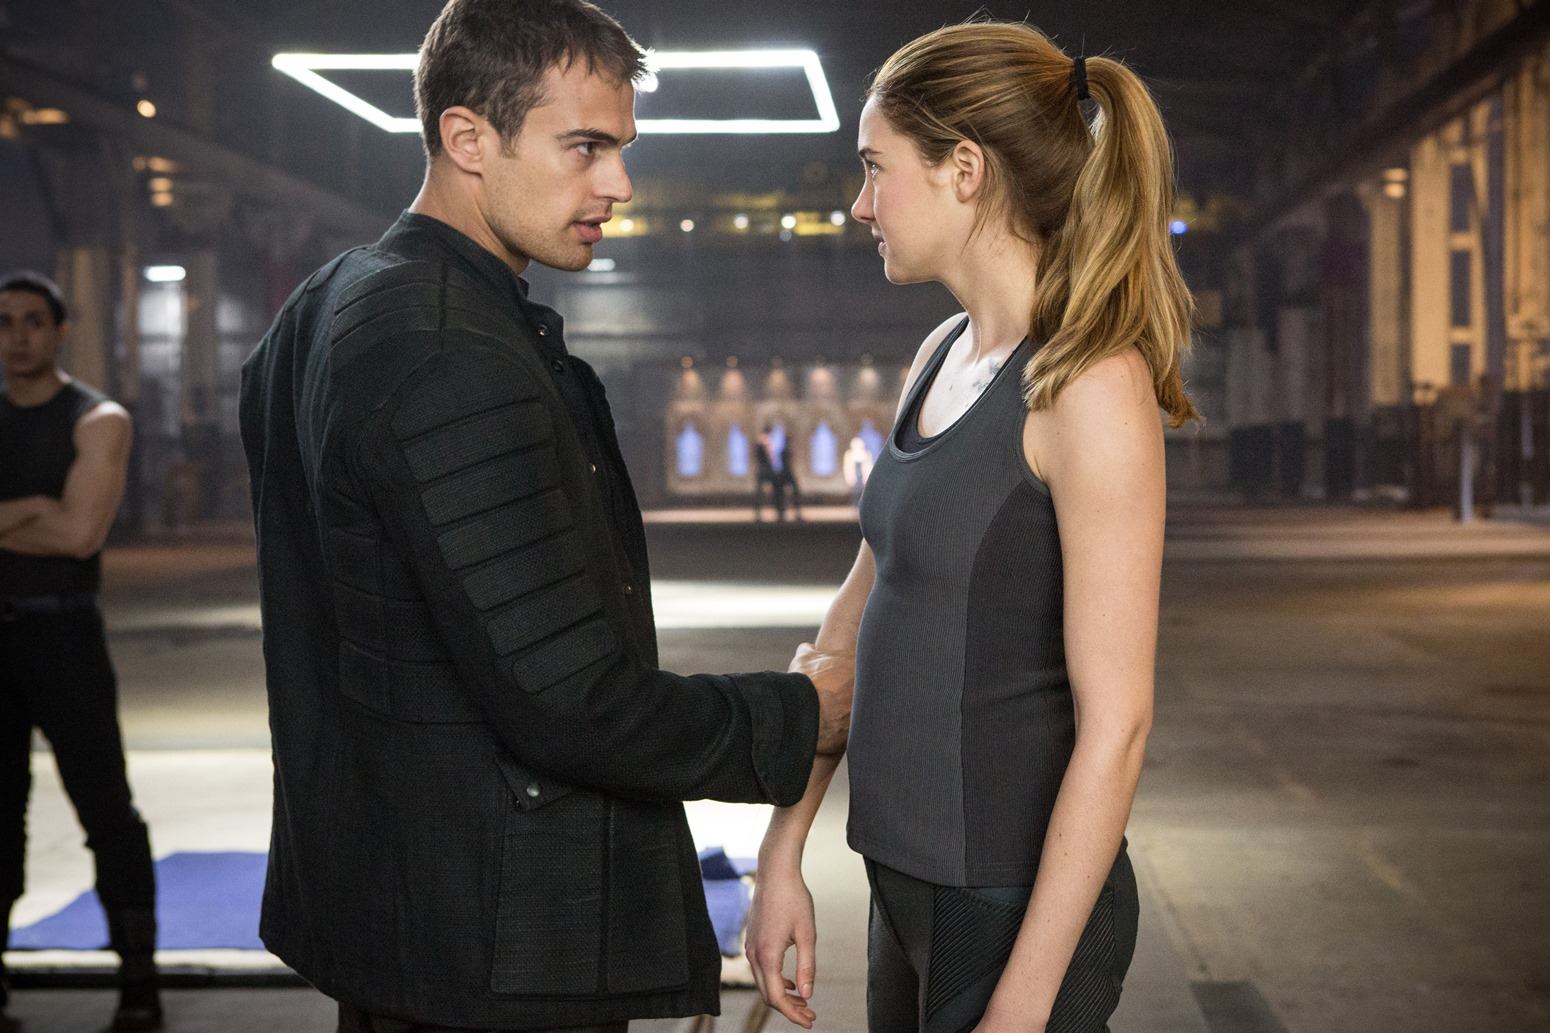 Divergent-Movie-Stills-BTS-Photo-HQ-Untagged-divergent-34842252-1550-1033.jpg